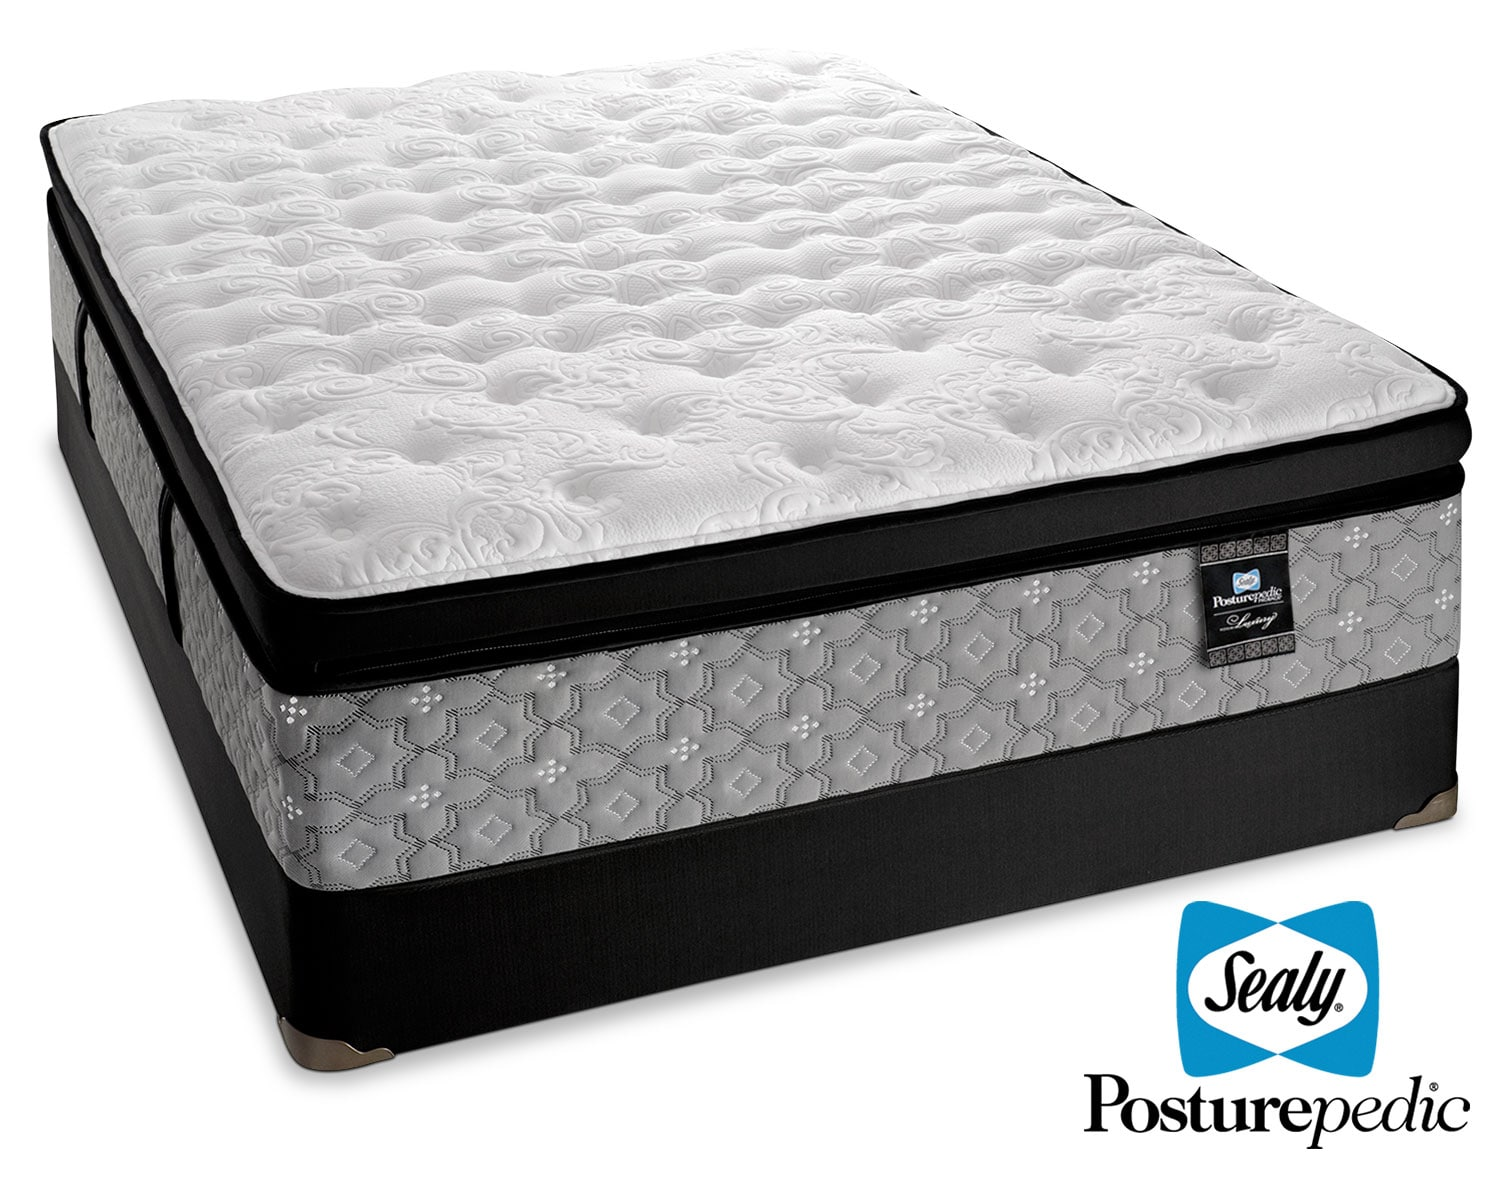 Mattresses and Bedding - Sealy Spartacus Firm Full Mattress/Boxspring Set